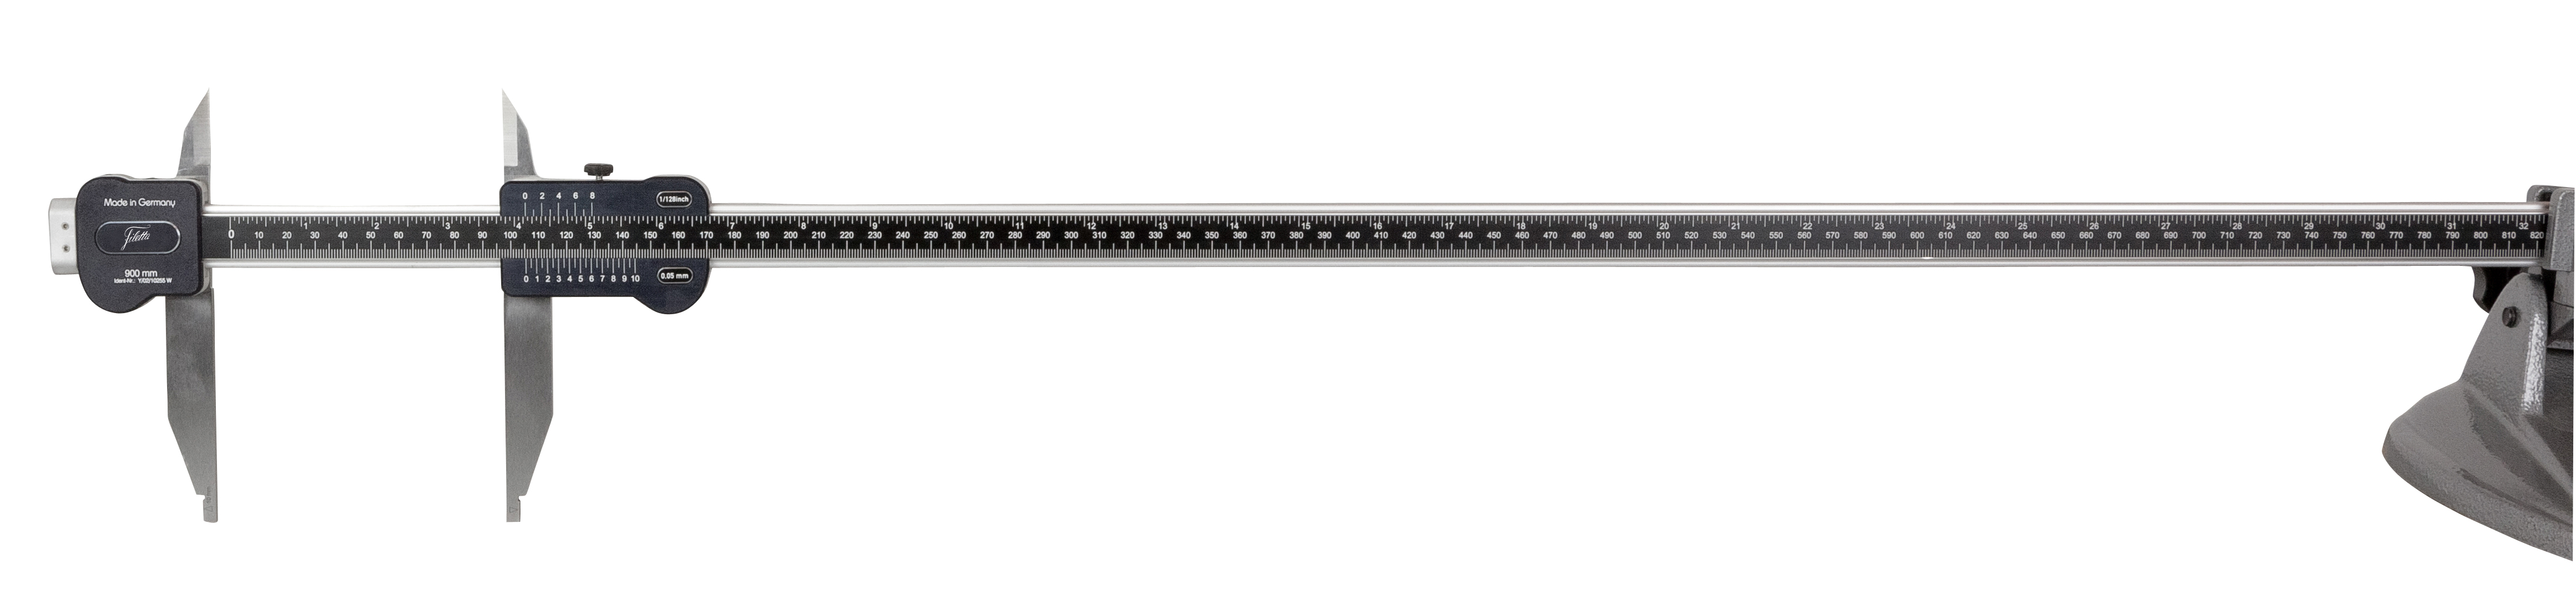 Parallax-free lightweight workshop caliper 0-300 mm